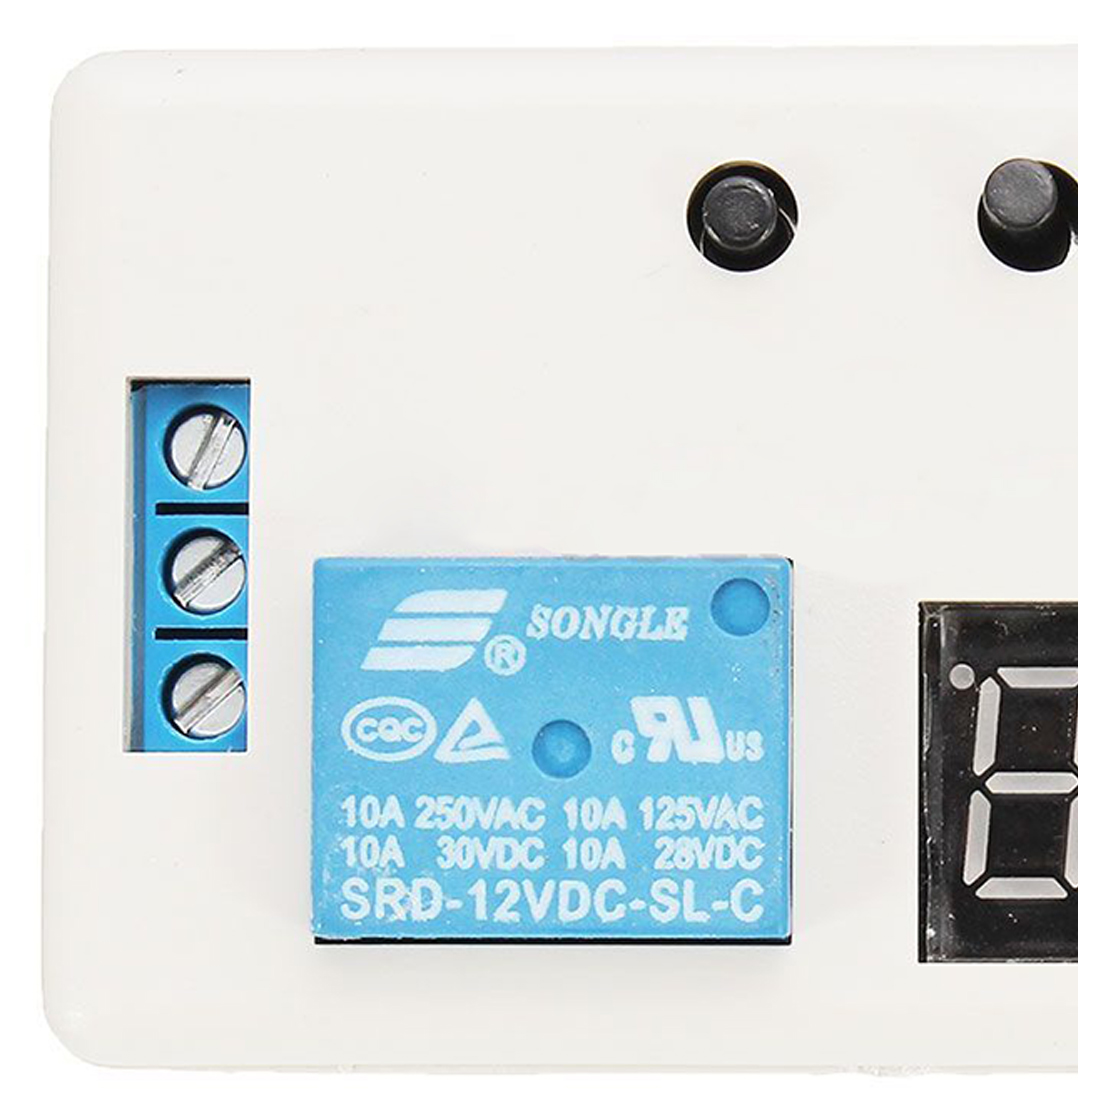 New 12v Led Automation Delay Timer Control Switch Relay